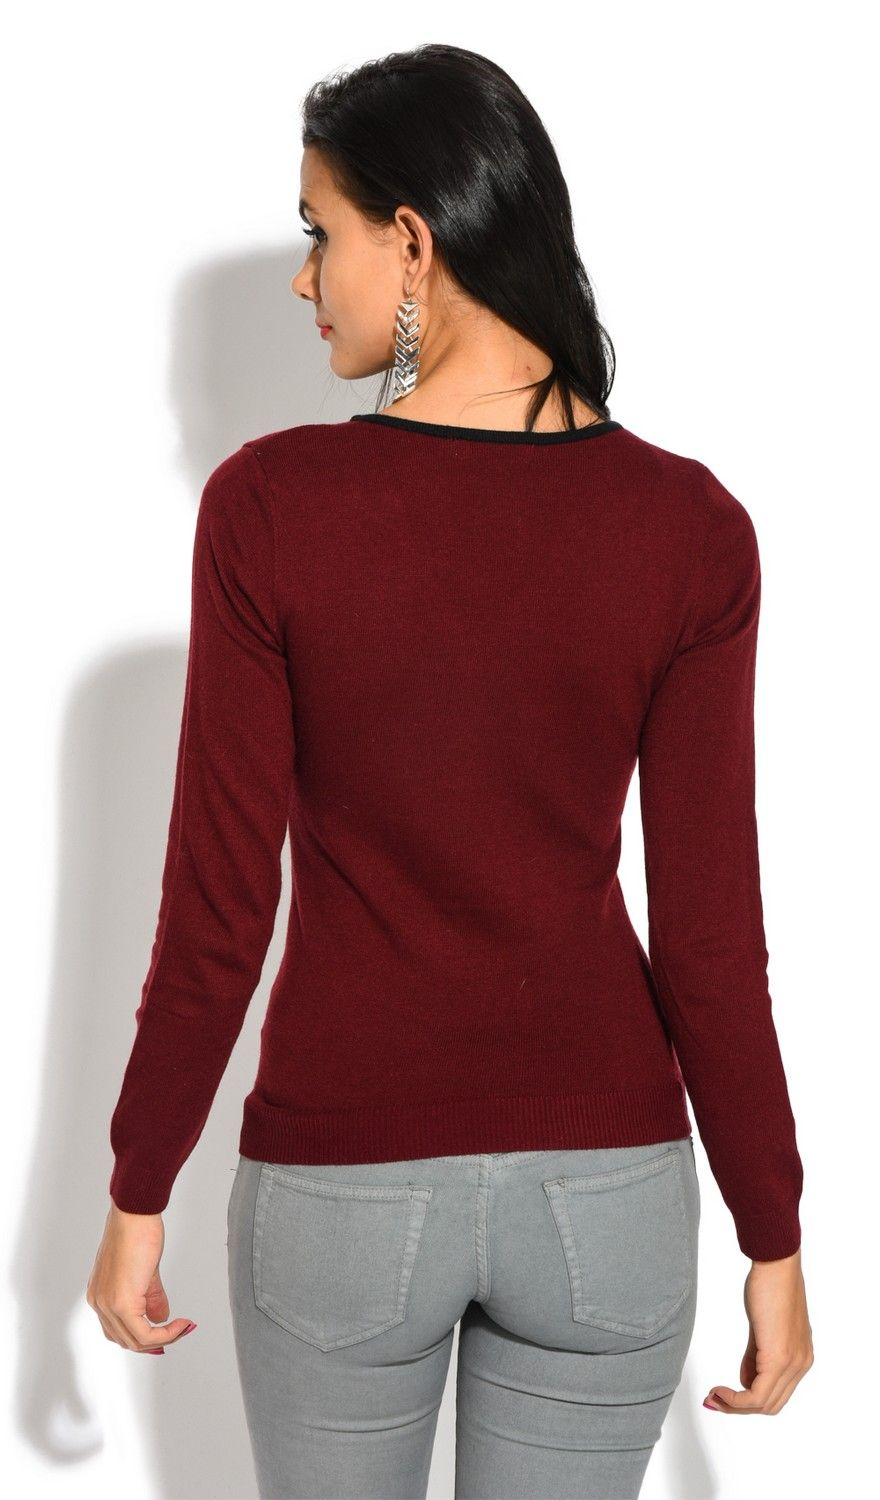 Assuili V-Neck Long Sleeve Two-tone Zip Detail Sweater in Maroon